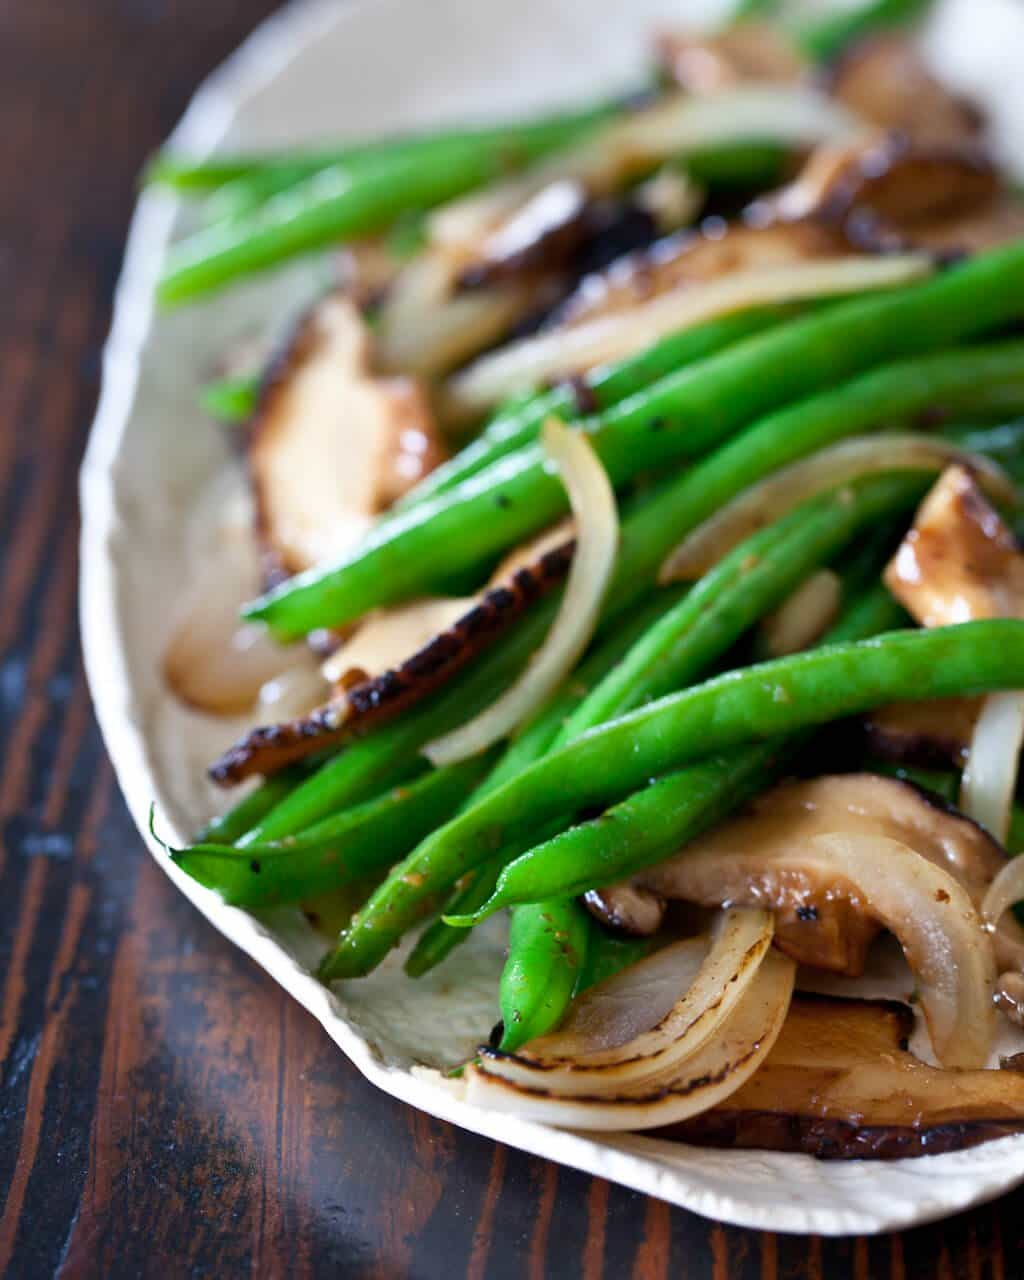 Kitchen Recipes: Green Bean And Shiitake Mushroom Stir Fry